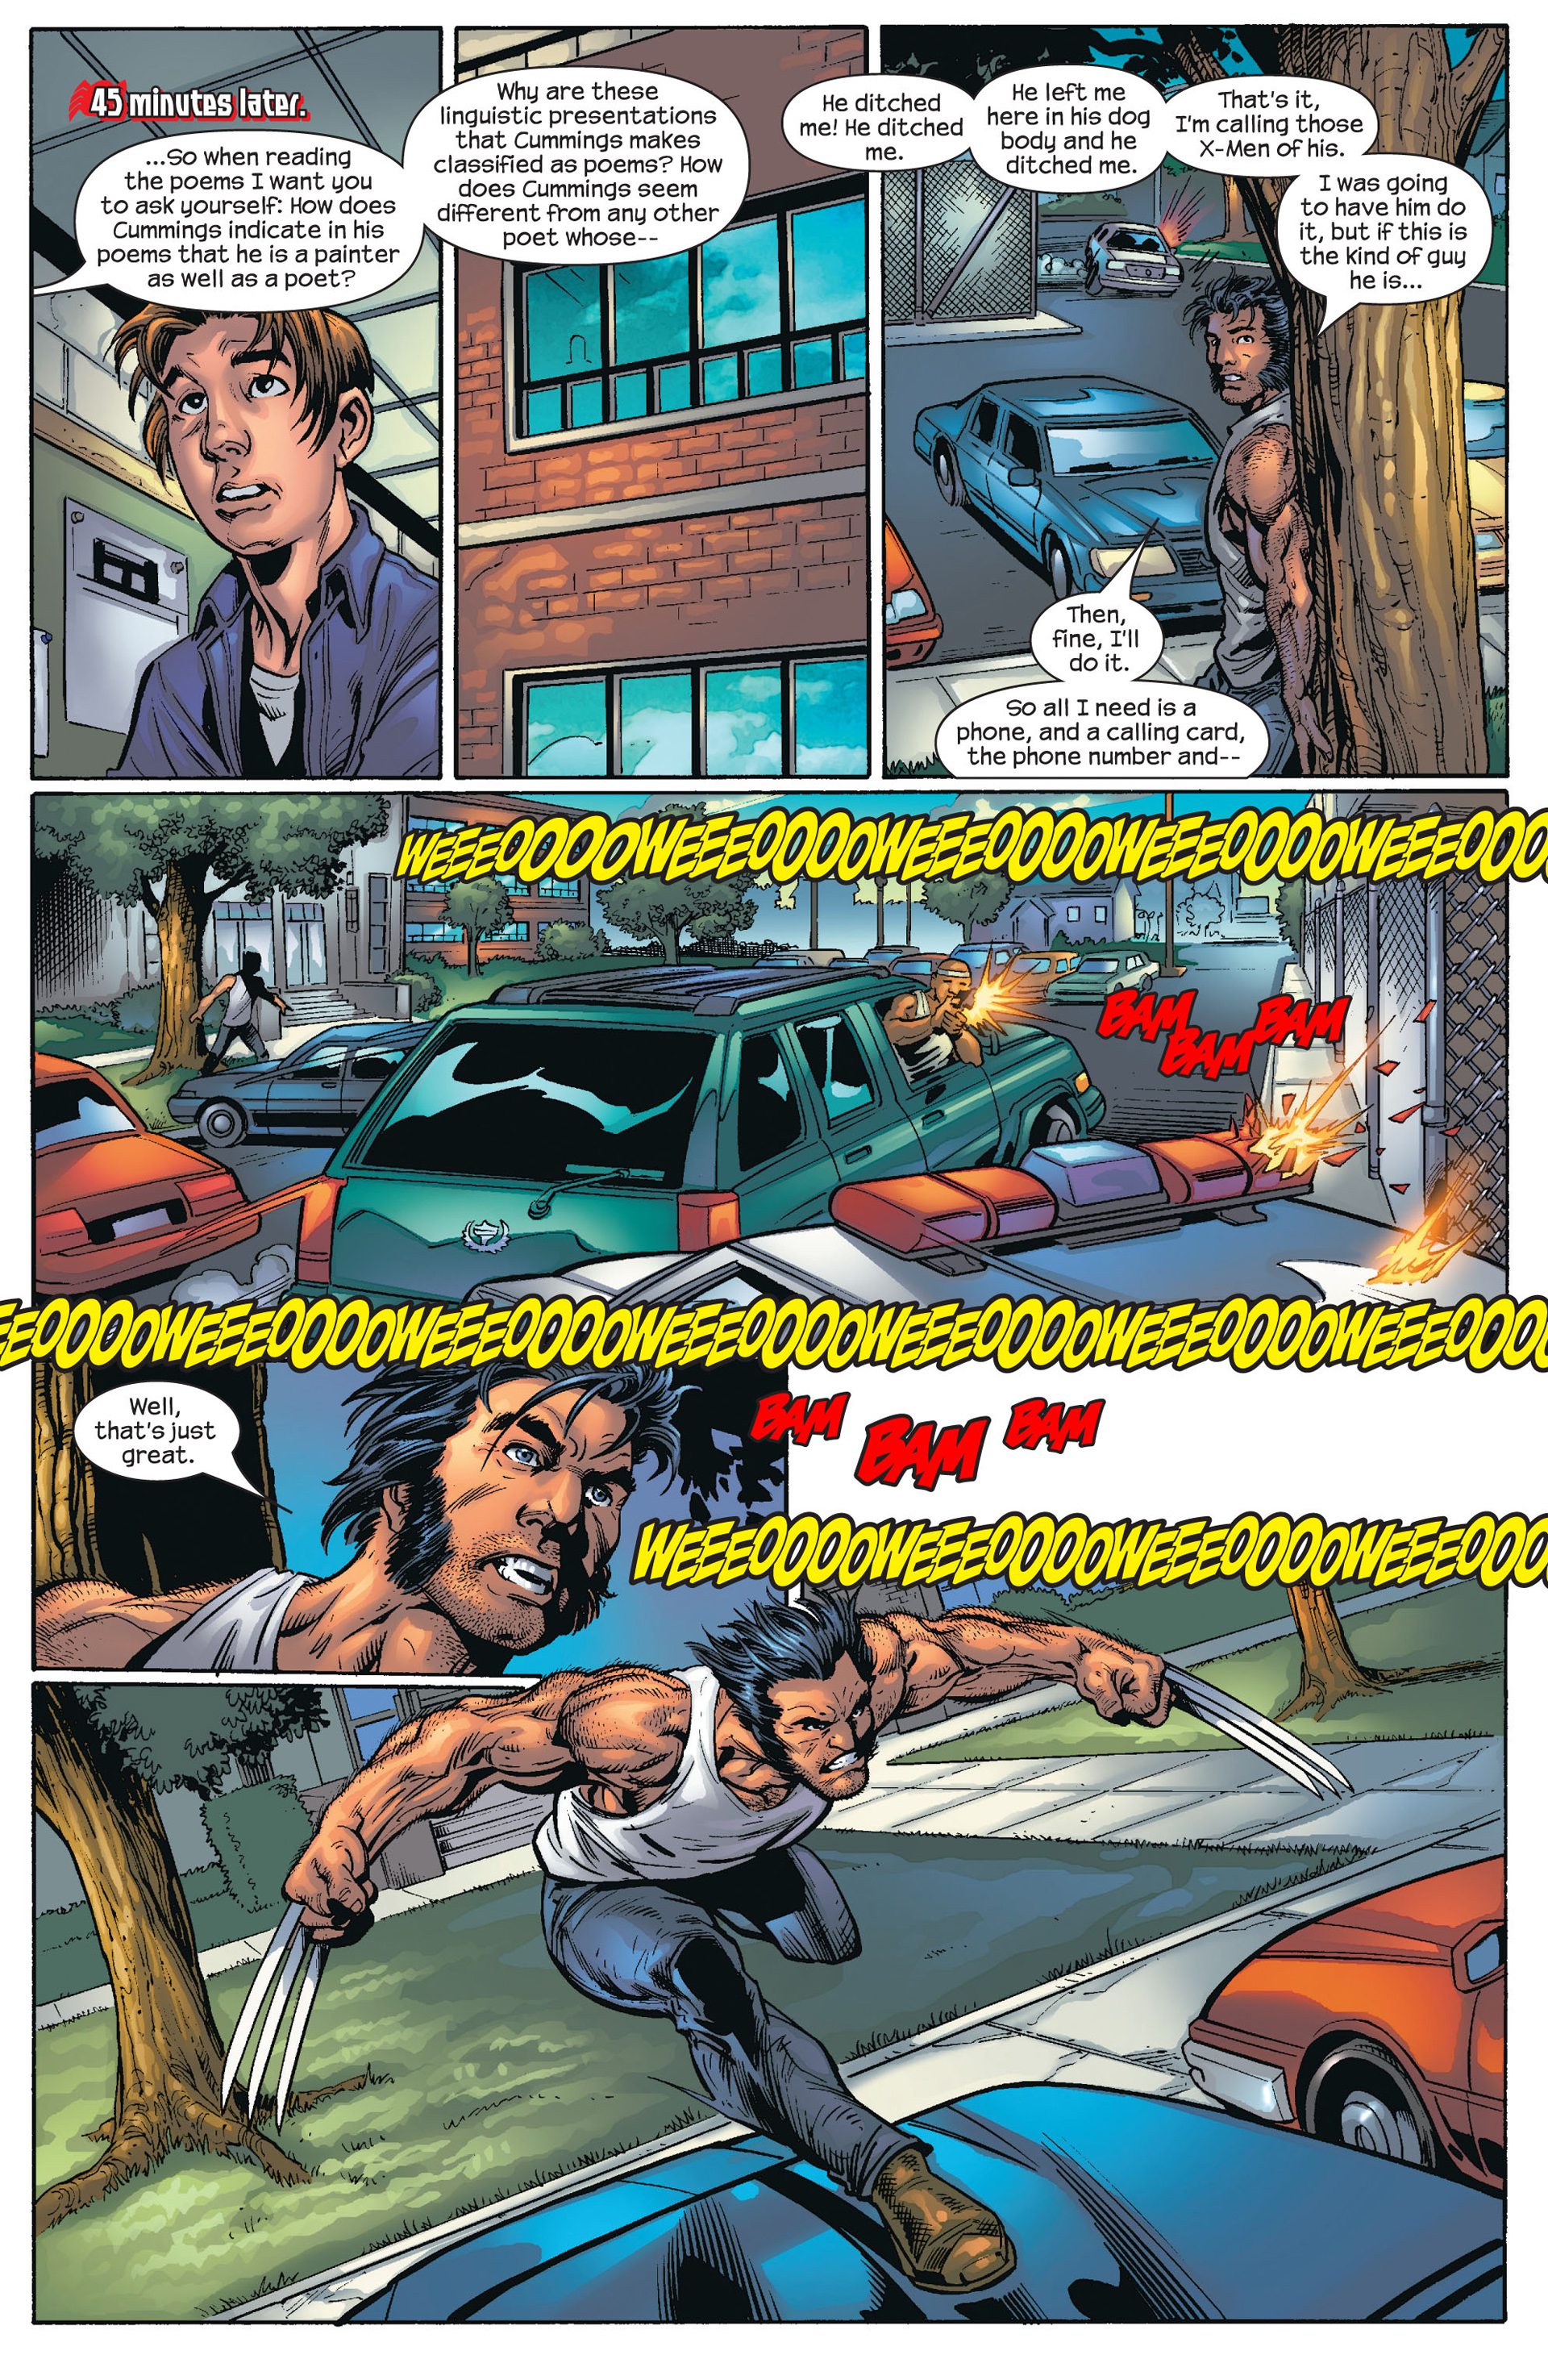 Read online Ultimate Spider-Man (2000) comic -  Issue #66 - 19